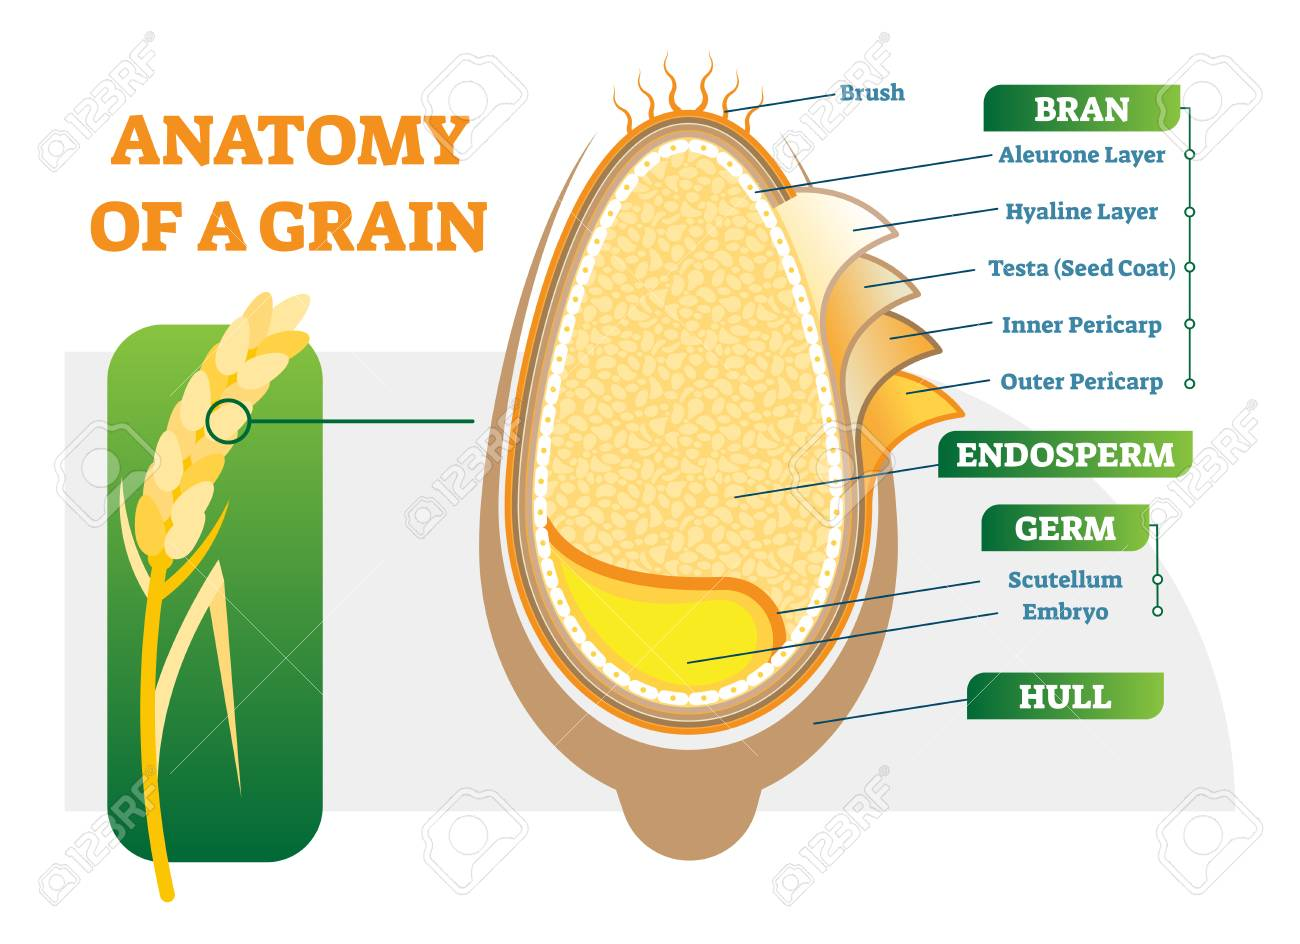 Grain anatomical layers vector illustration diagram with bran, endosperm, germ and hull. Biology science poster. - 98976831